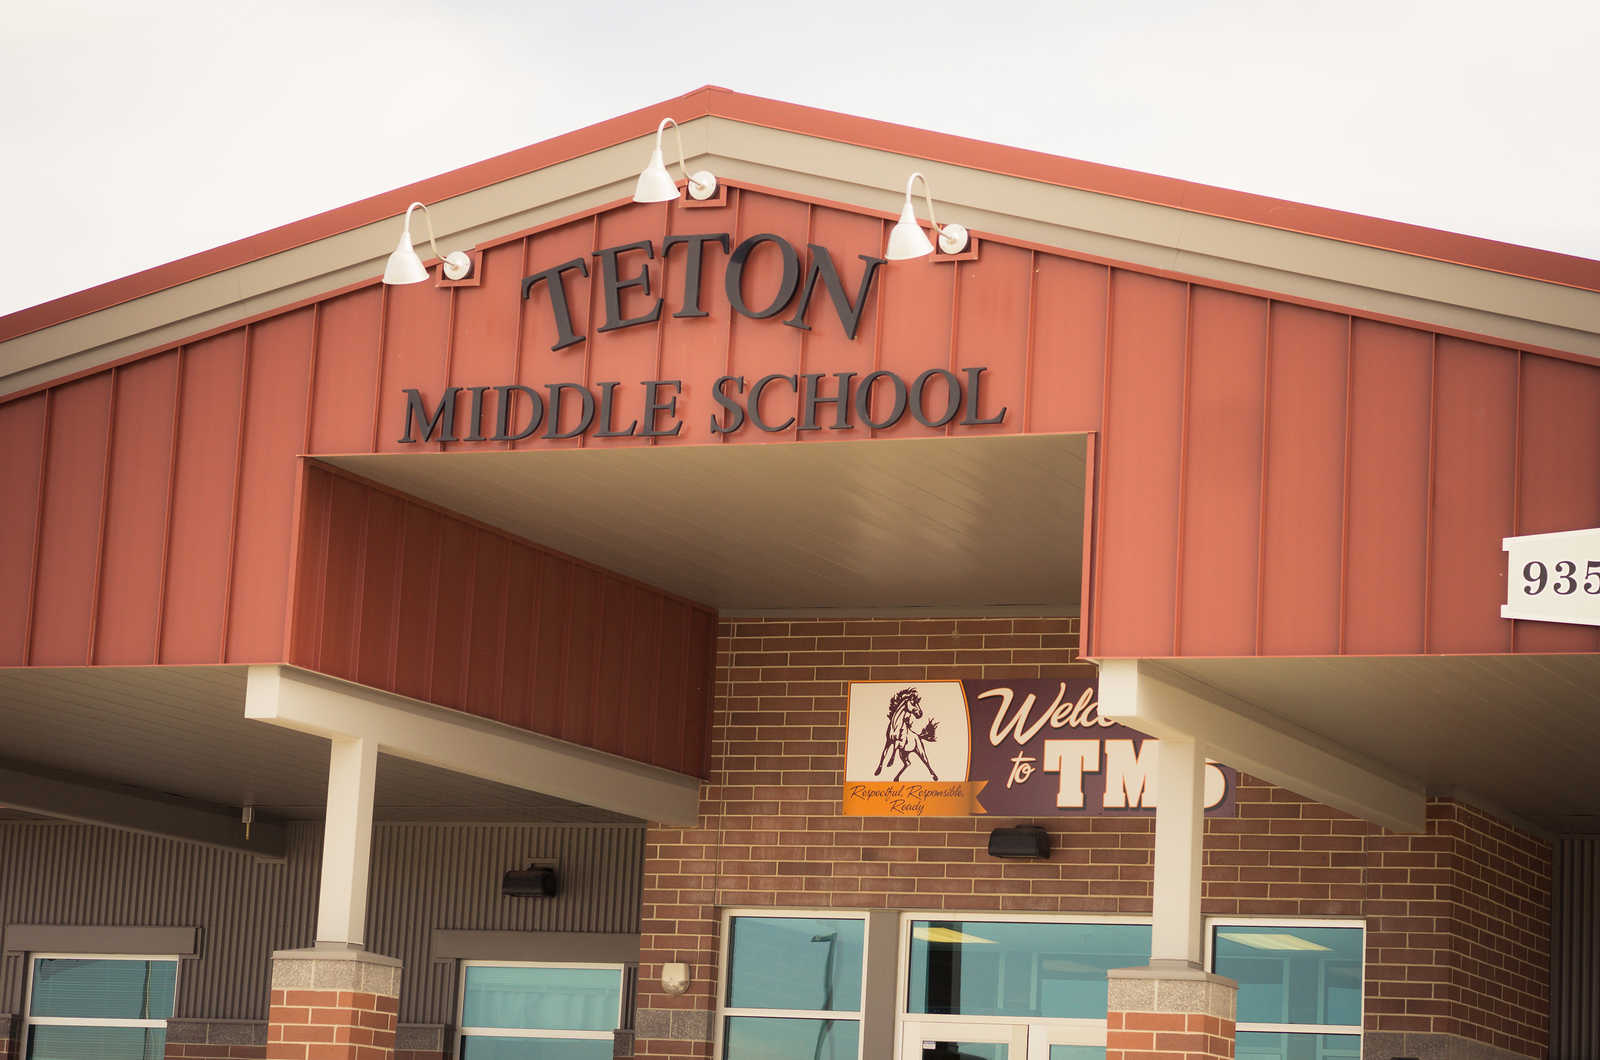 Teton Middle School